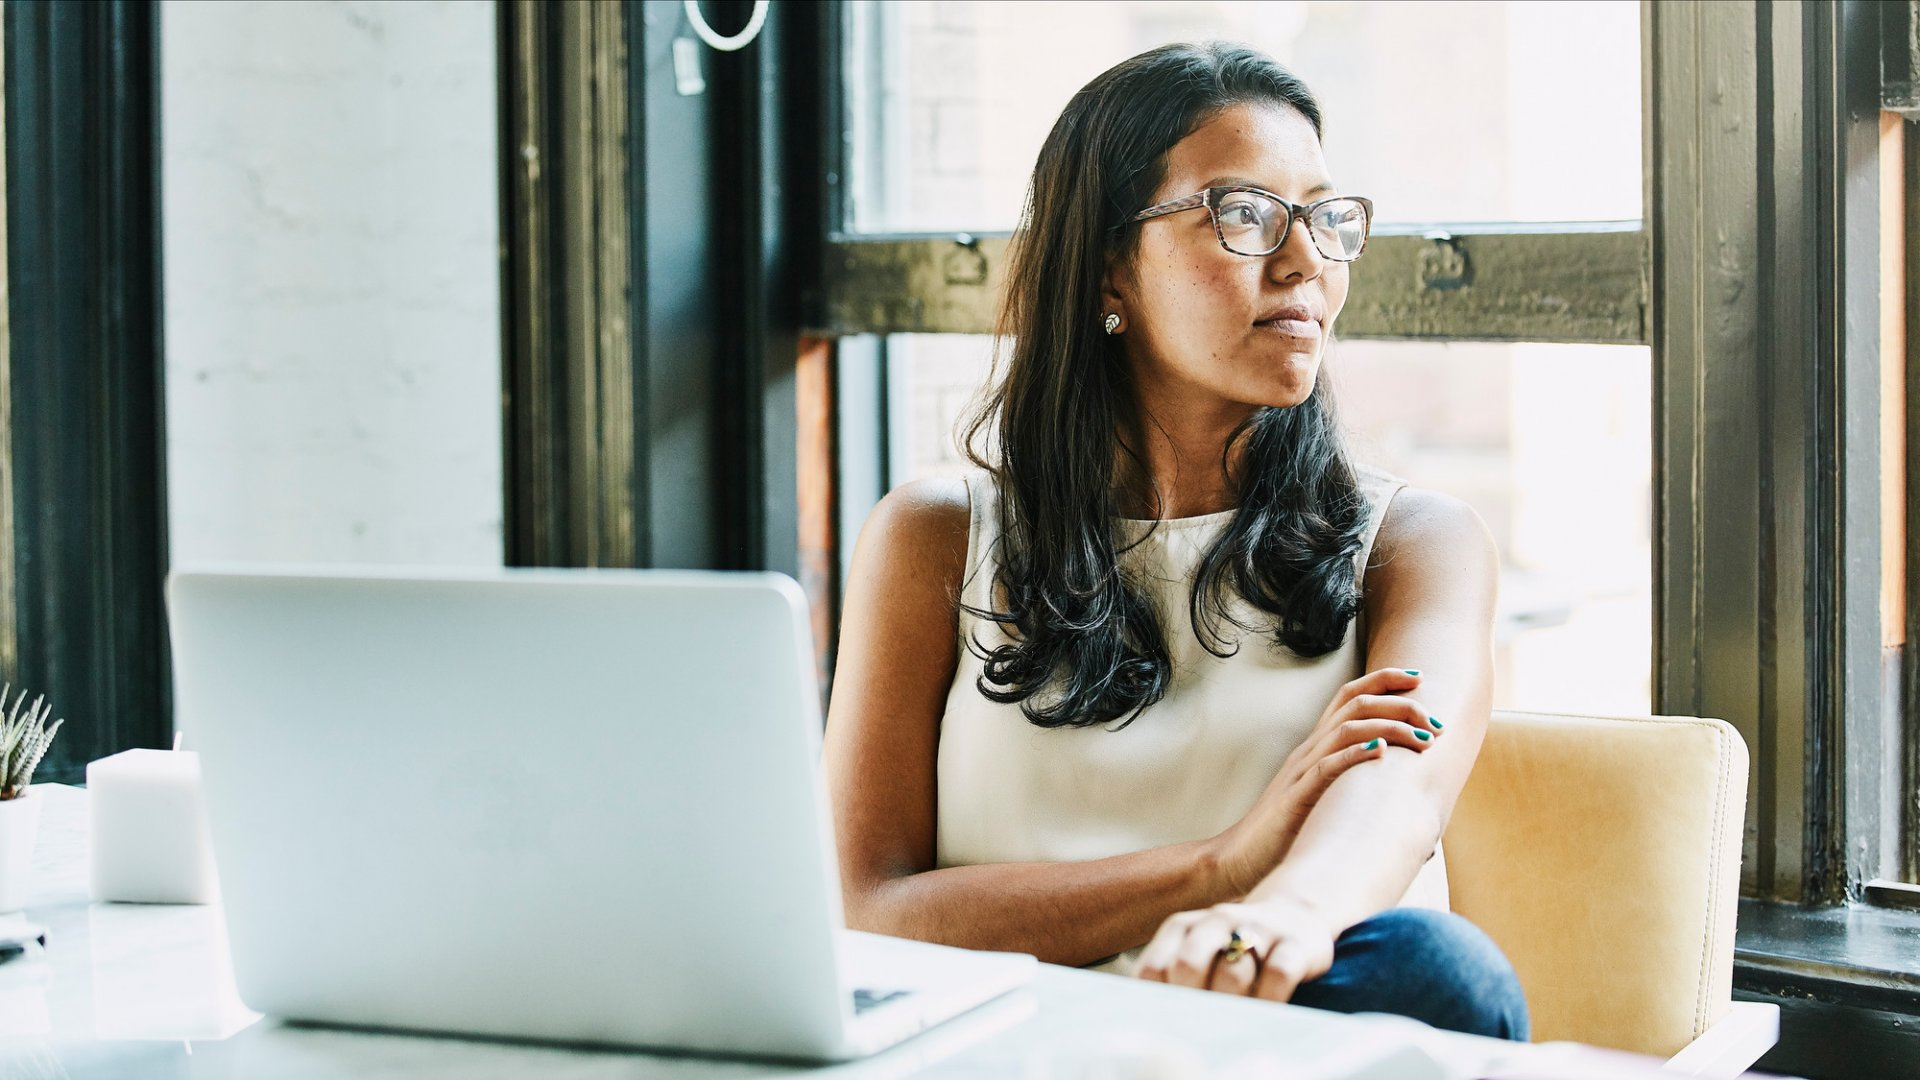 Feeling Unfulfilled? Try These 7 Things to Find Better Purpose